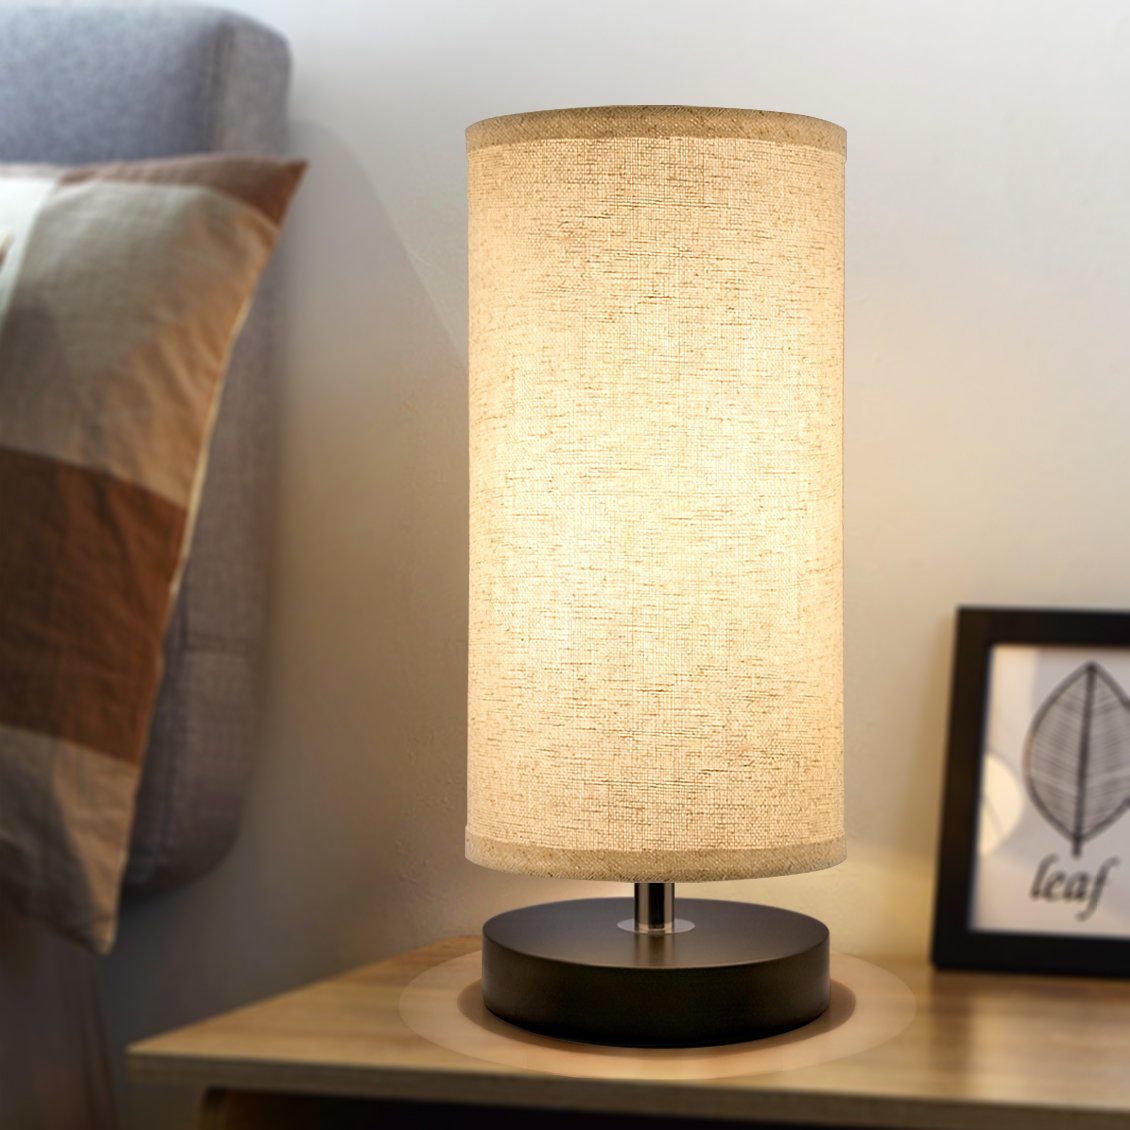 Table Lamps | Amazon.com | Lighting \u0026 Ceiling Fans - Lamps \u0026 Shades